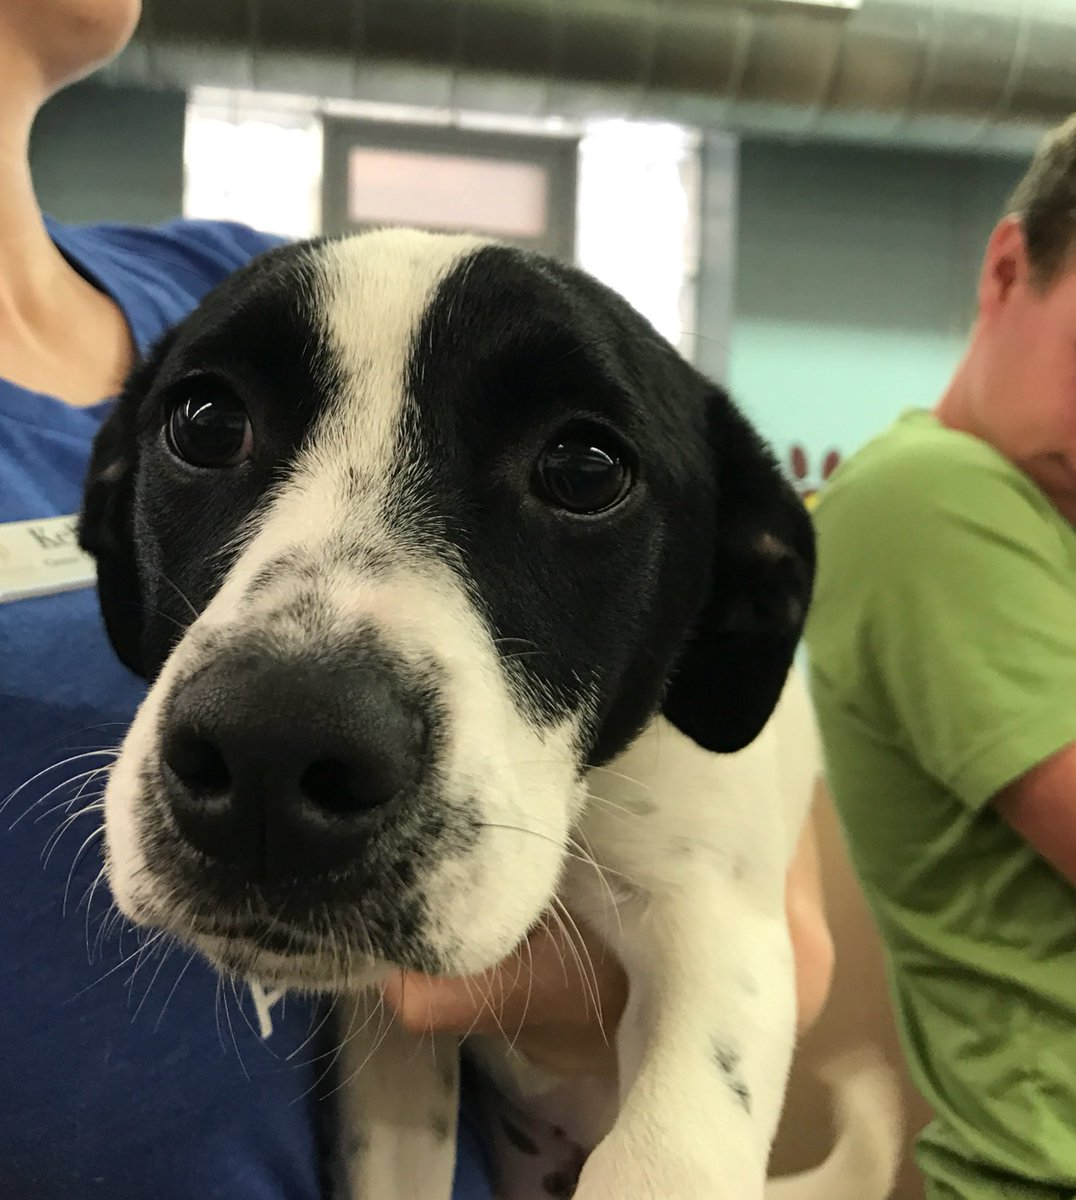 6-month-old Petunia is looking for a home this #MemorialDayWeekend great specials on all pets. @Providence_AC https://t.co/fH1D2aUnu3